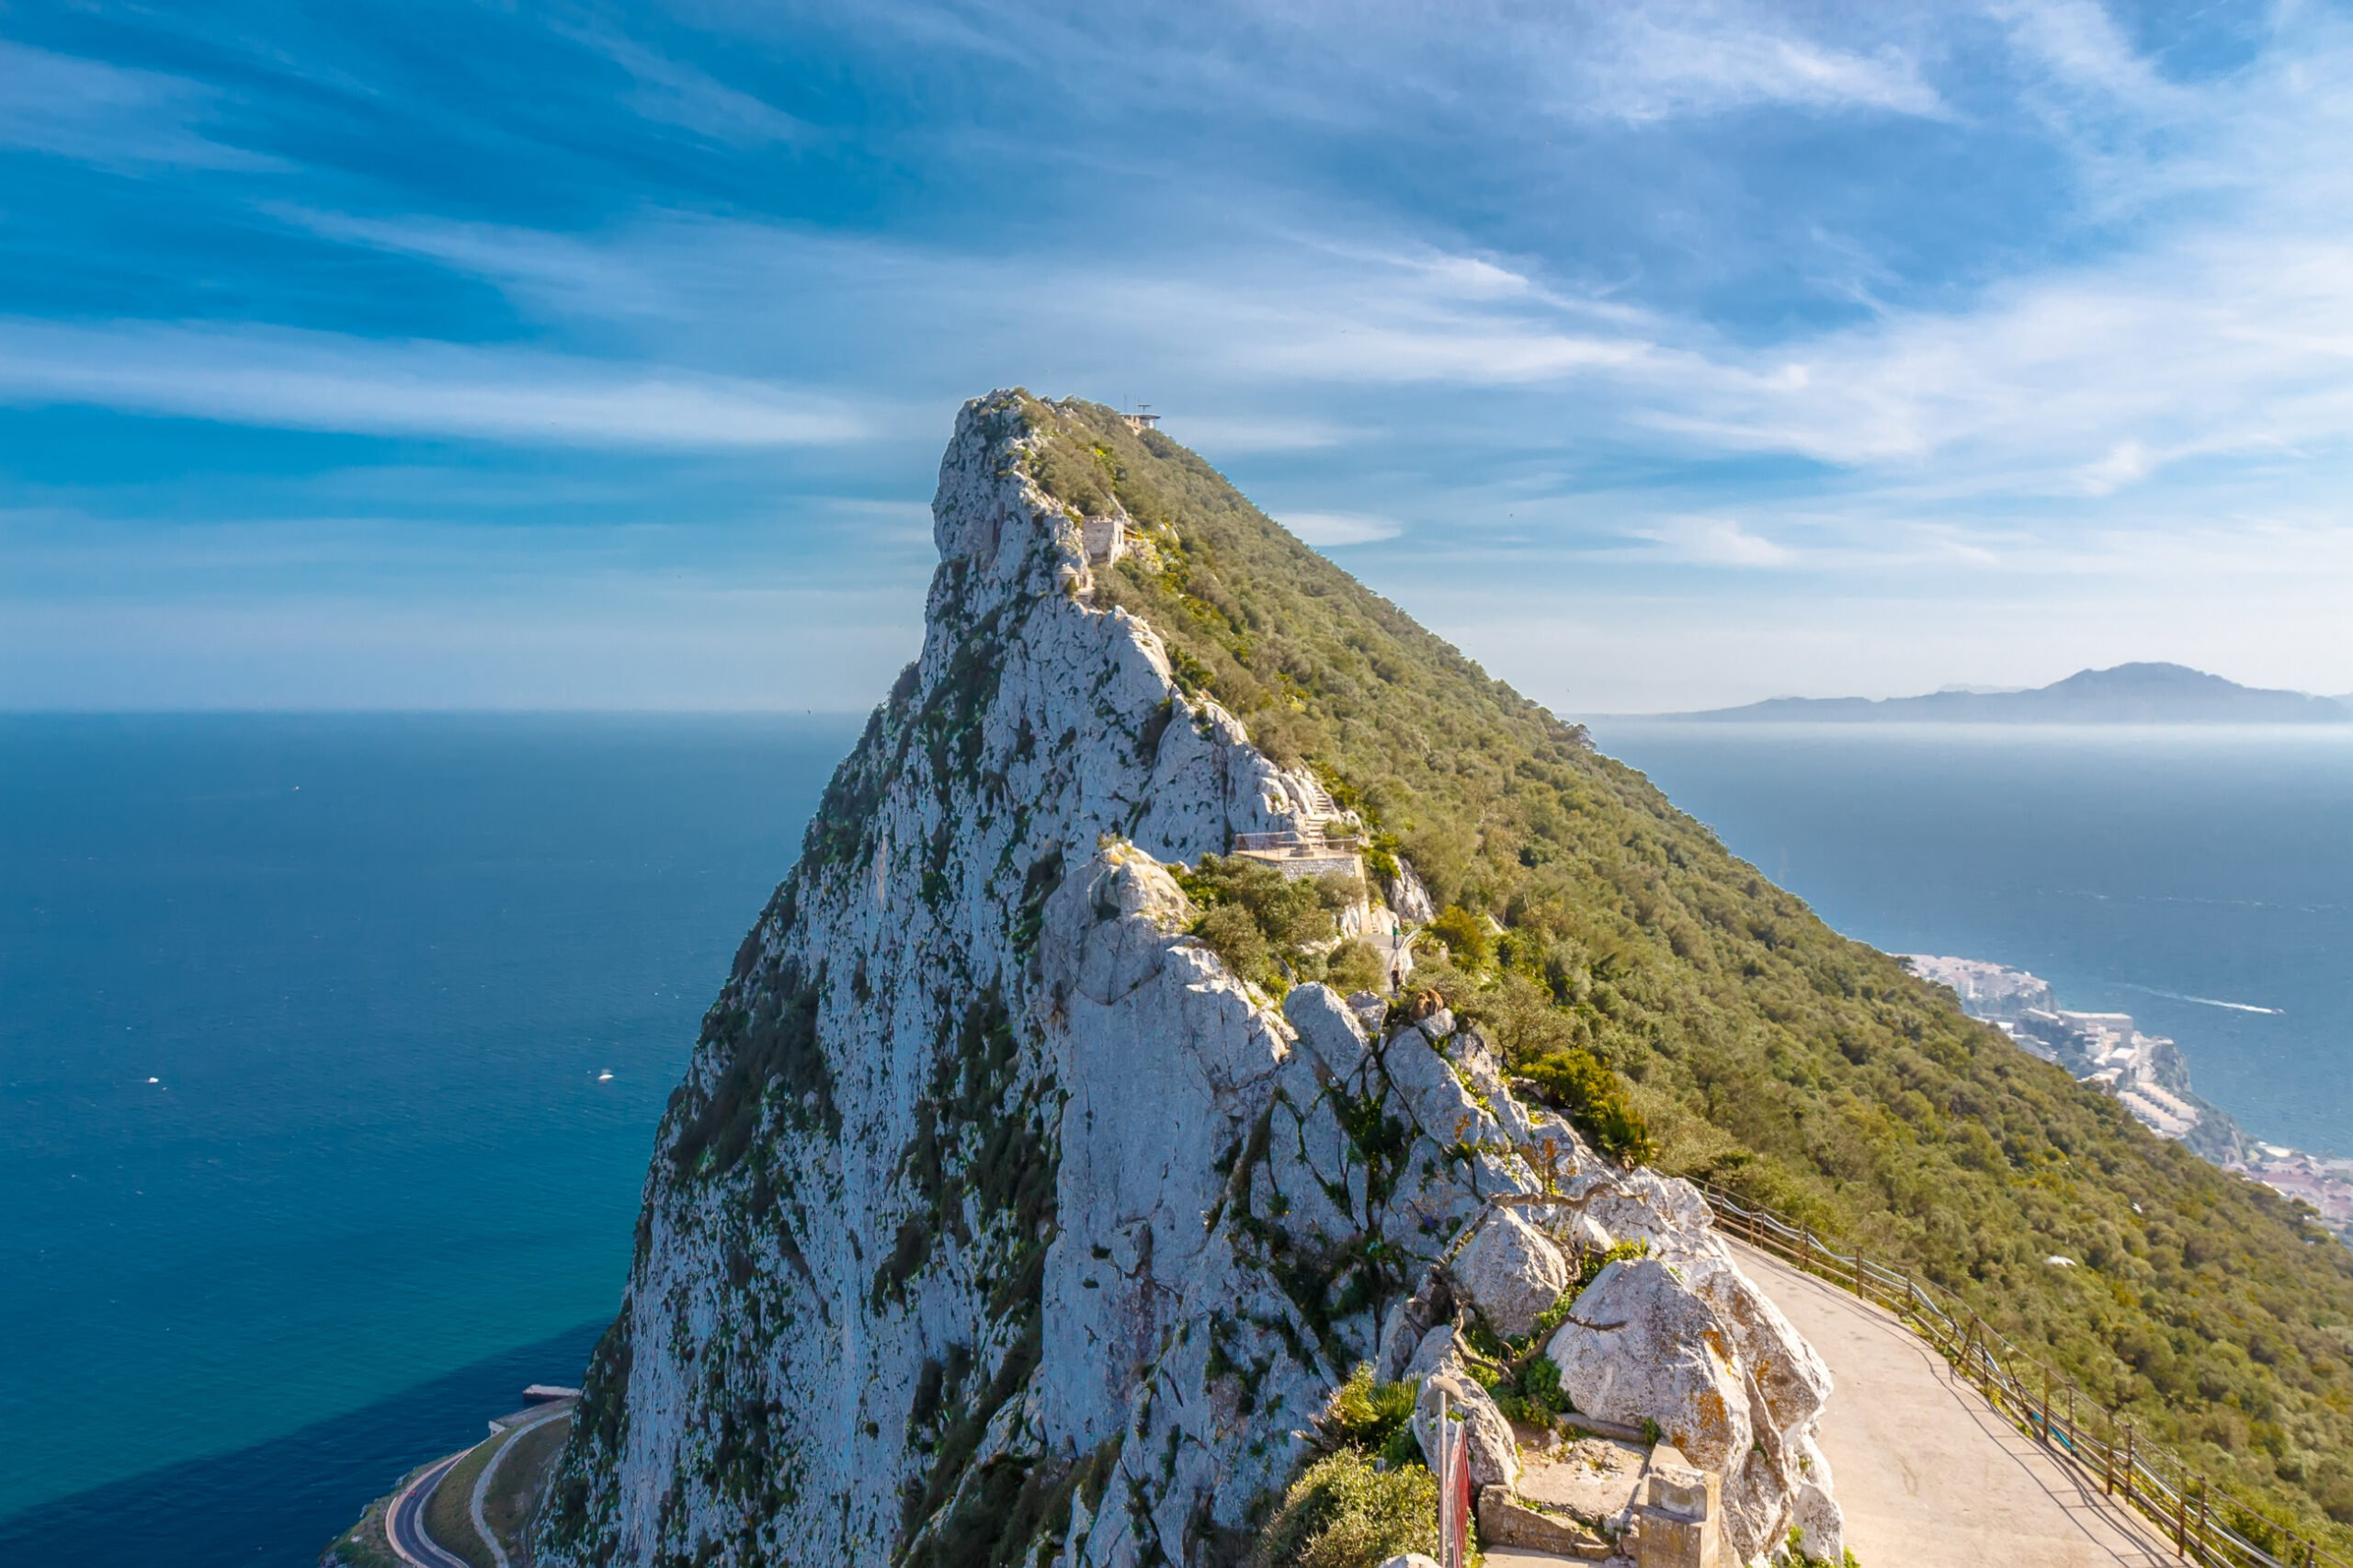 Discover The Rock Of Gibraltar On The Gibraltar Tour From Seville